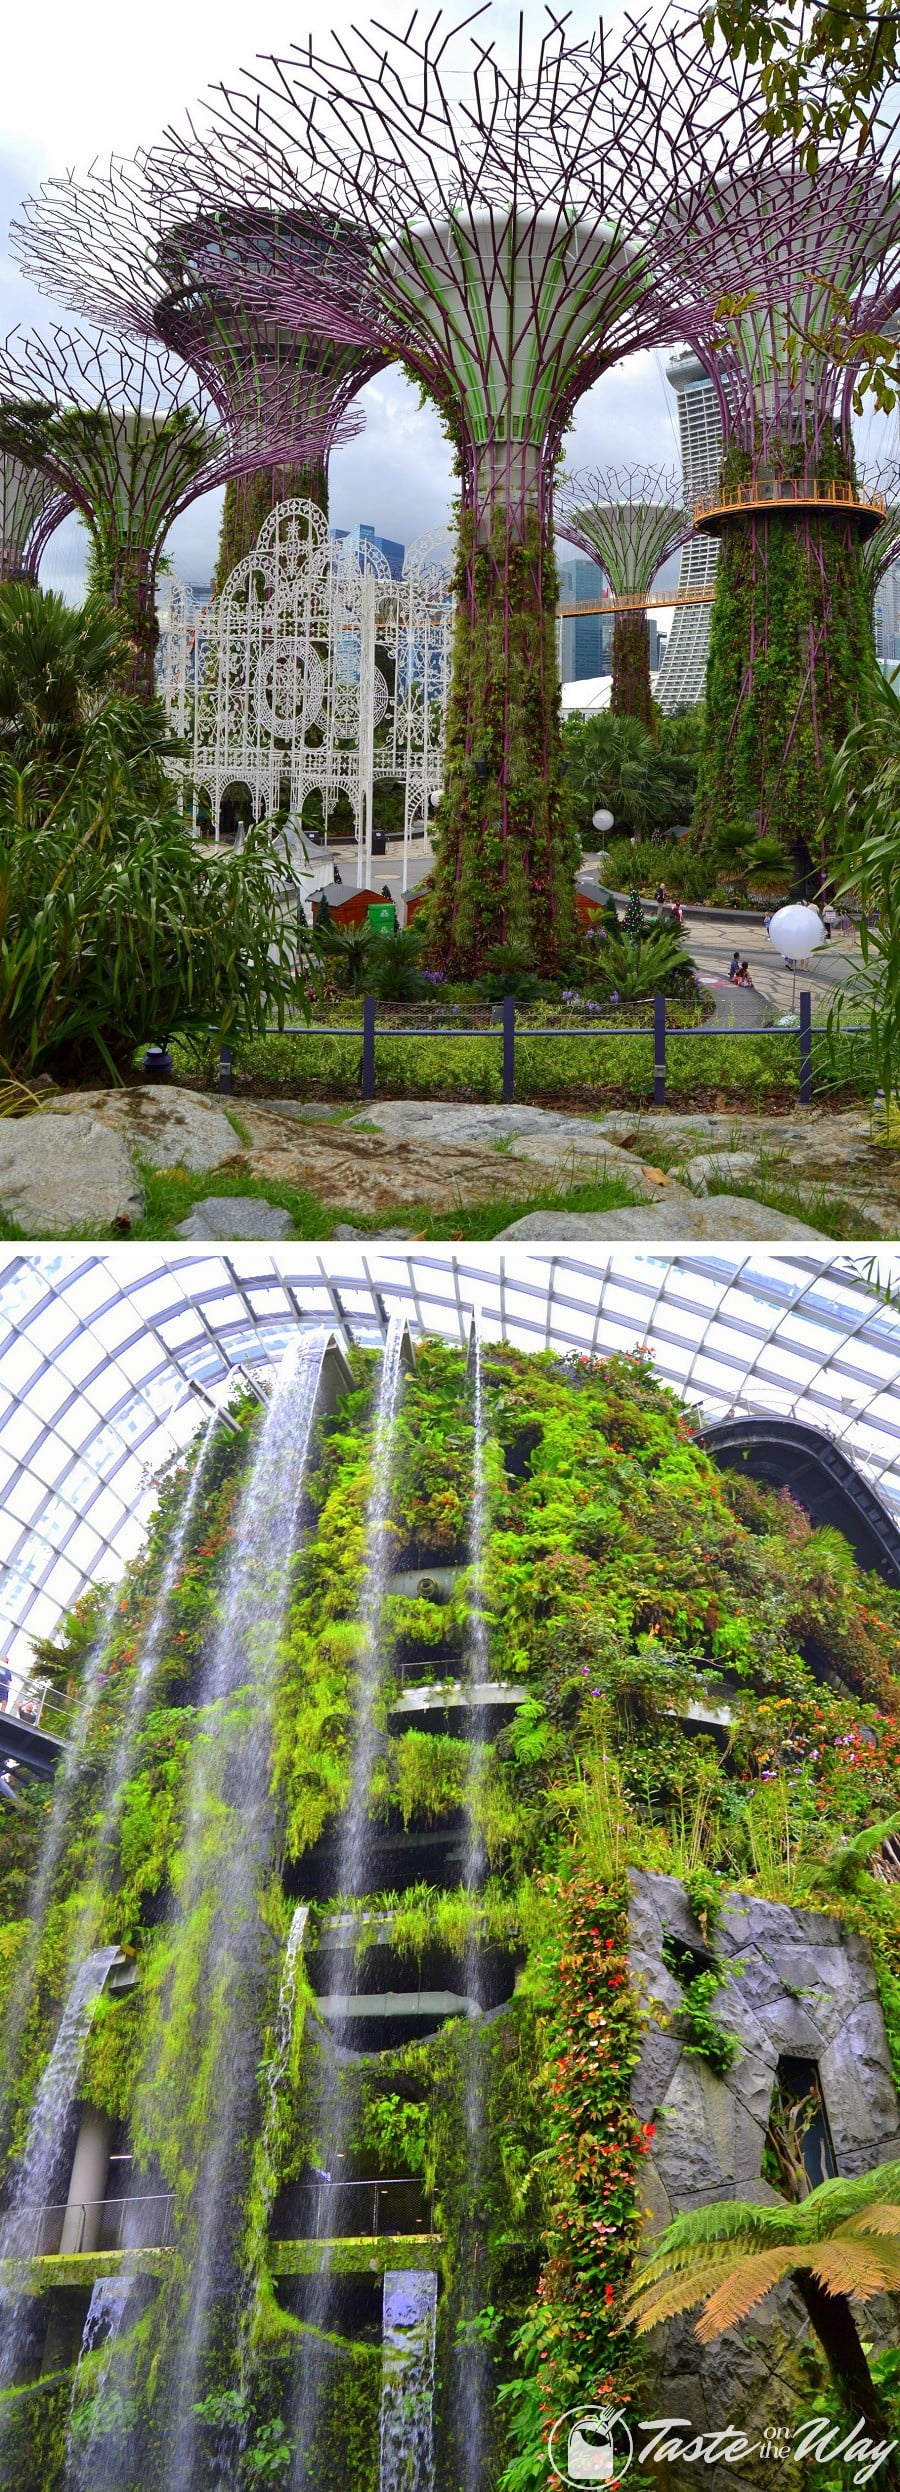 Top 10 Best Things to Do in Singapore - Visiting the Cloud Forest in Gardens by the Bay is just one of the top #thingstodo in #Singapore. Check out for more! #travel #photography @tasteontheway